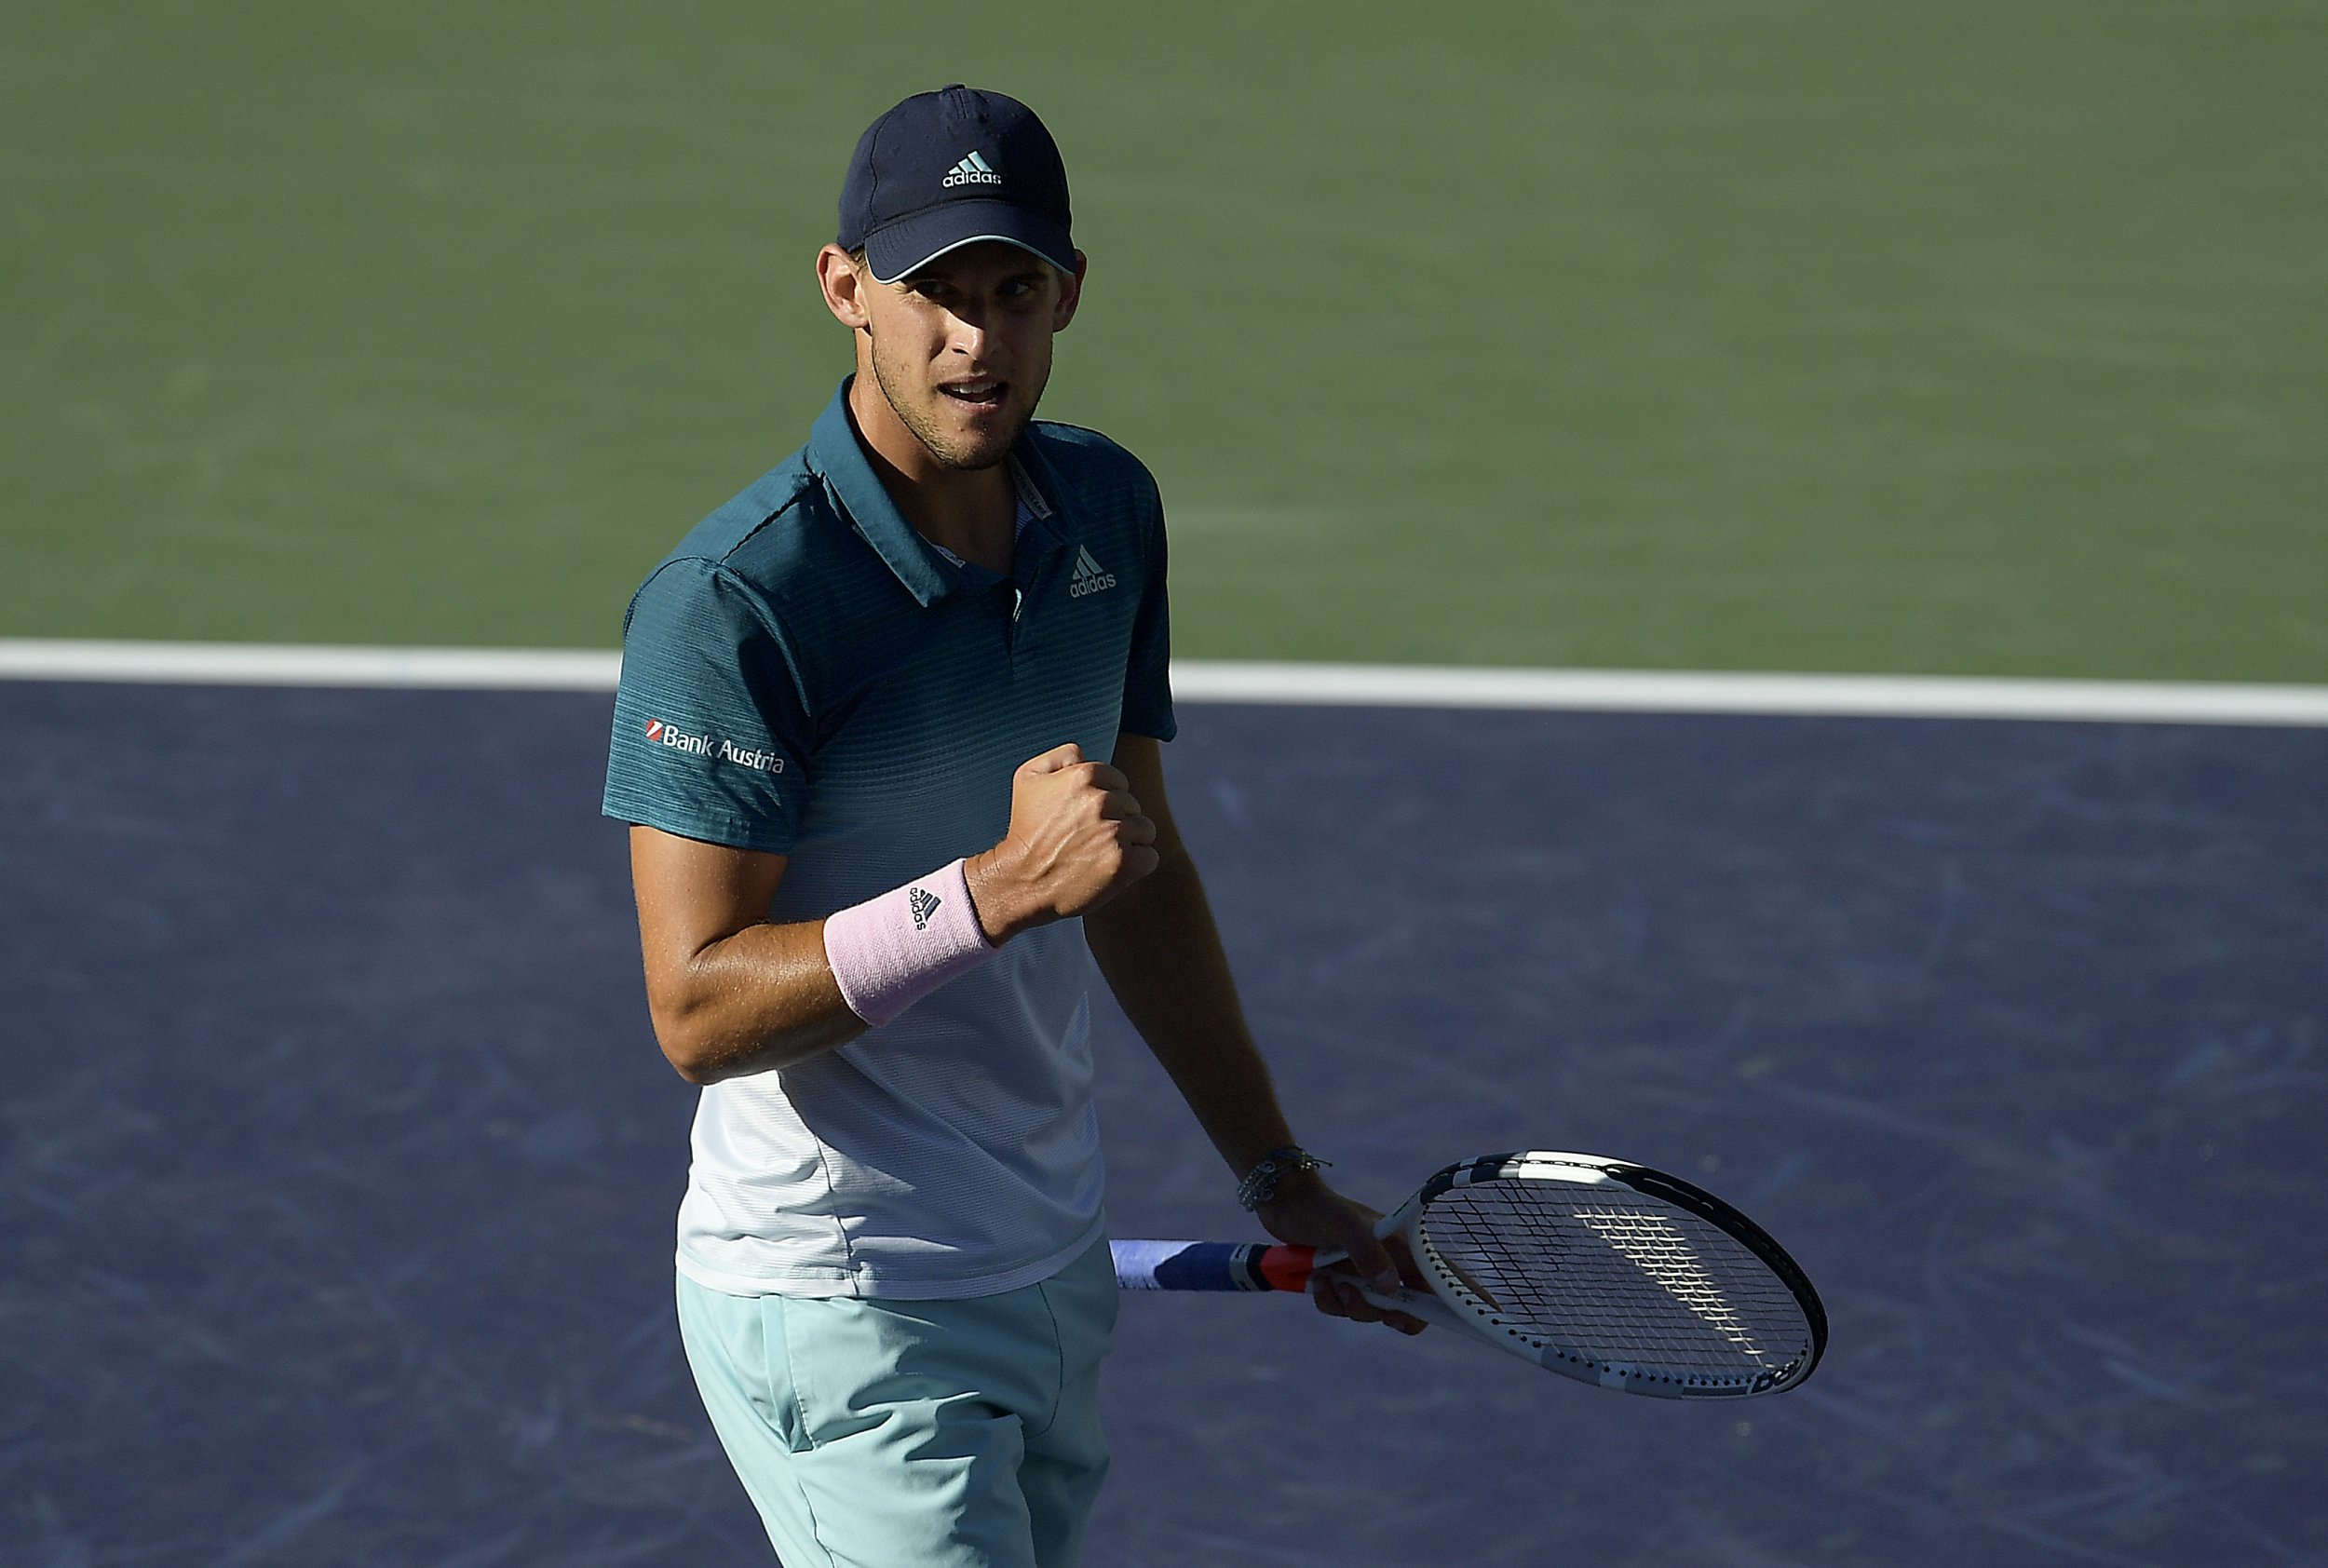 Dominic Thiem fights back to shock Roger Federer and win first Masters title at Indian Wells